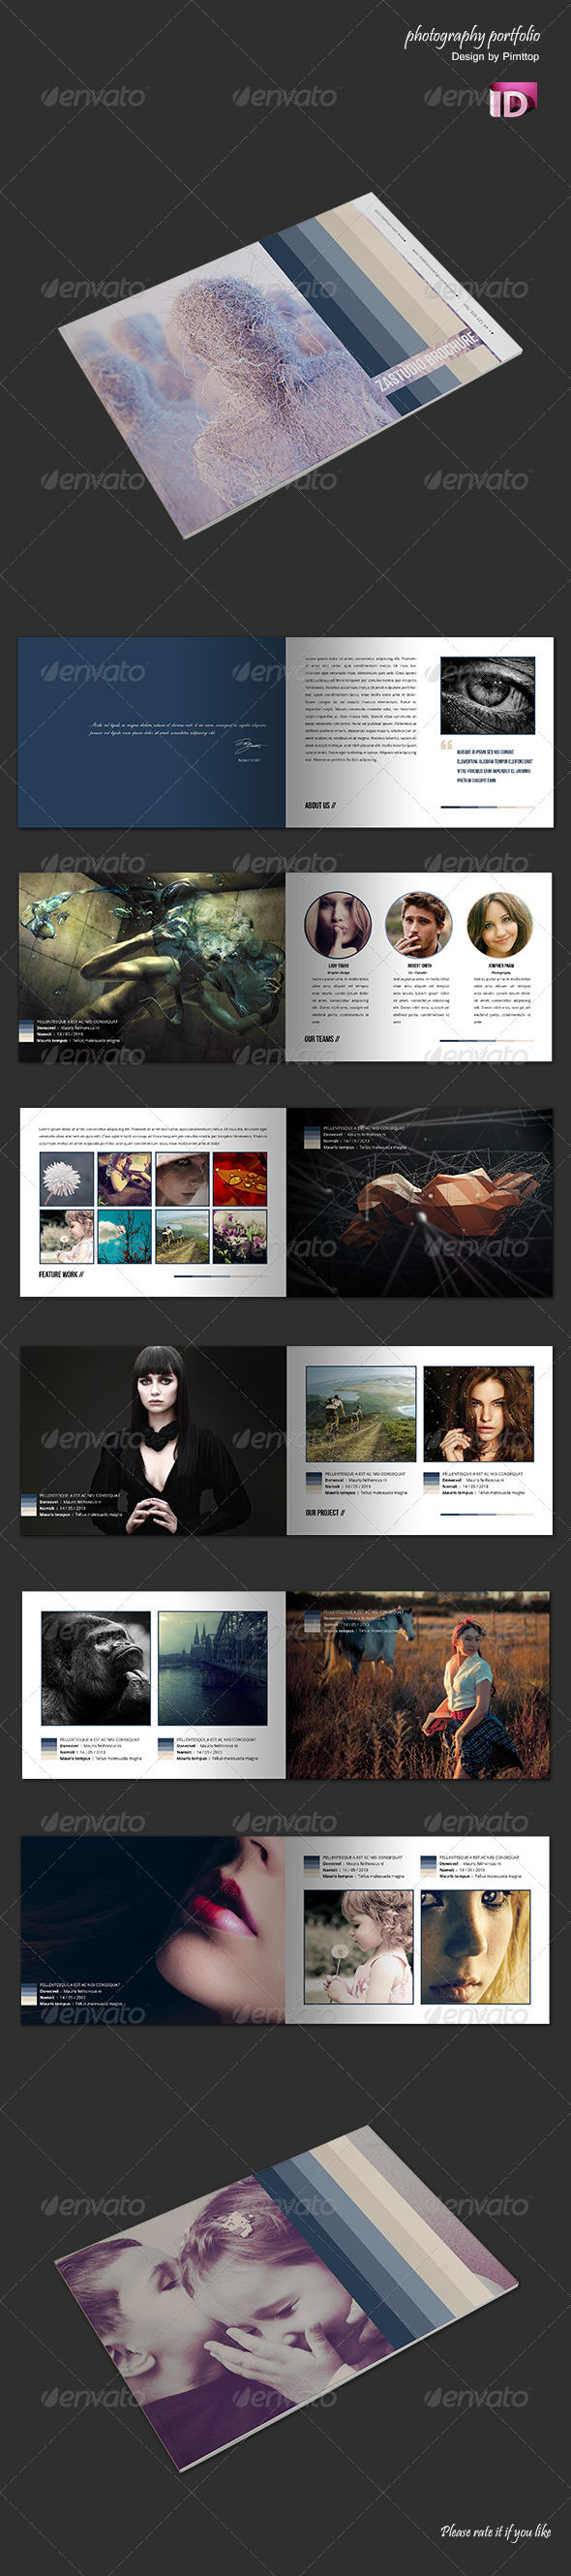 GraphicRiver Photography Portfolio A5 Brochure 4722235